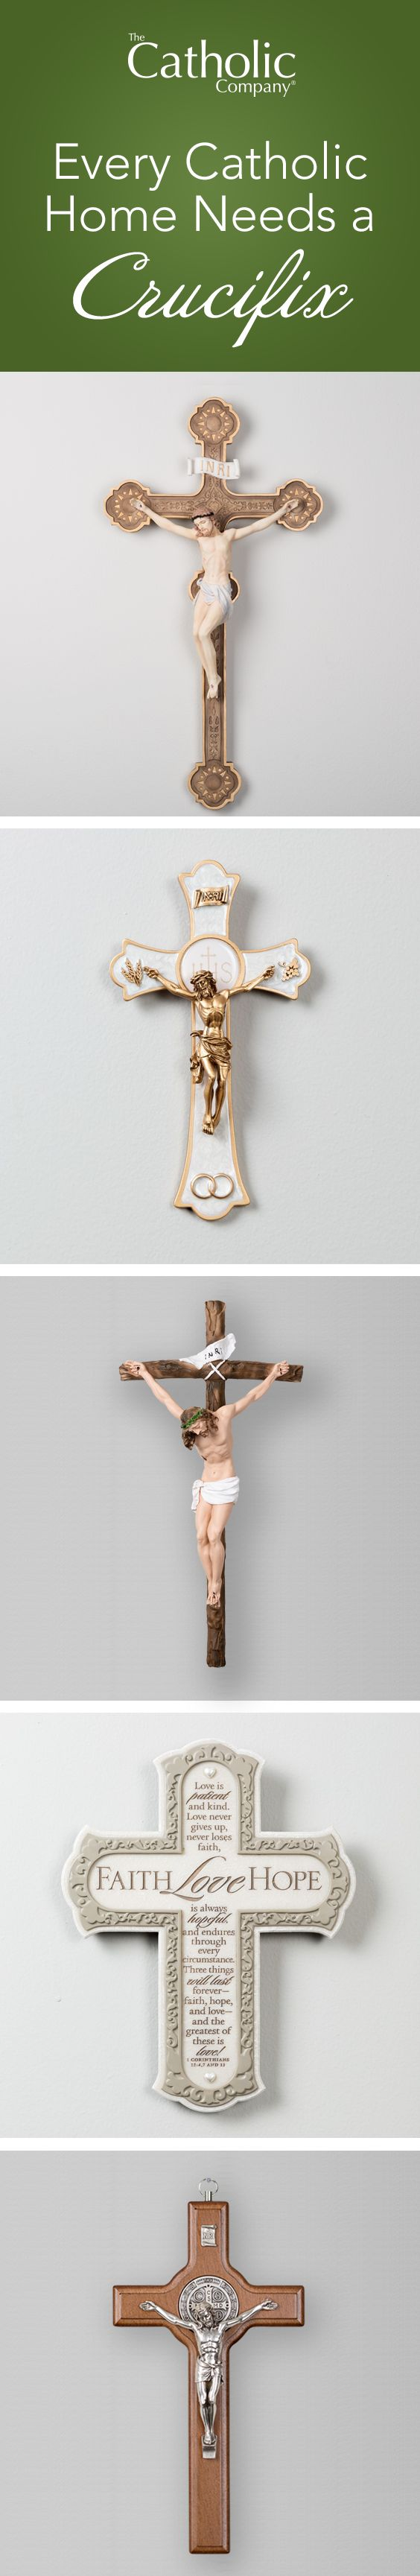 Make your walls a place of art and beauty by thoughtfully featuring a wall crucifix or cross.